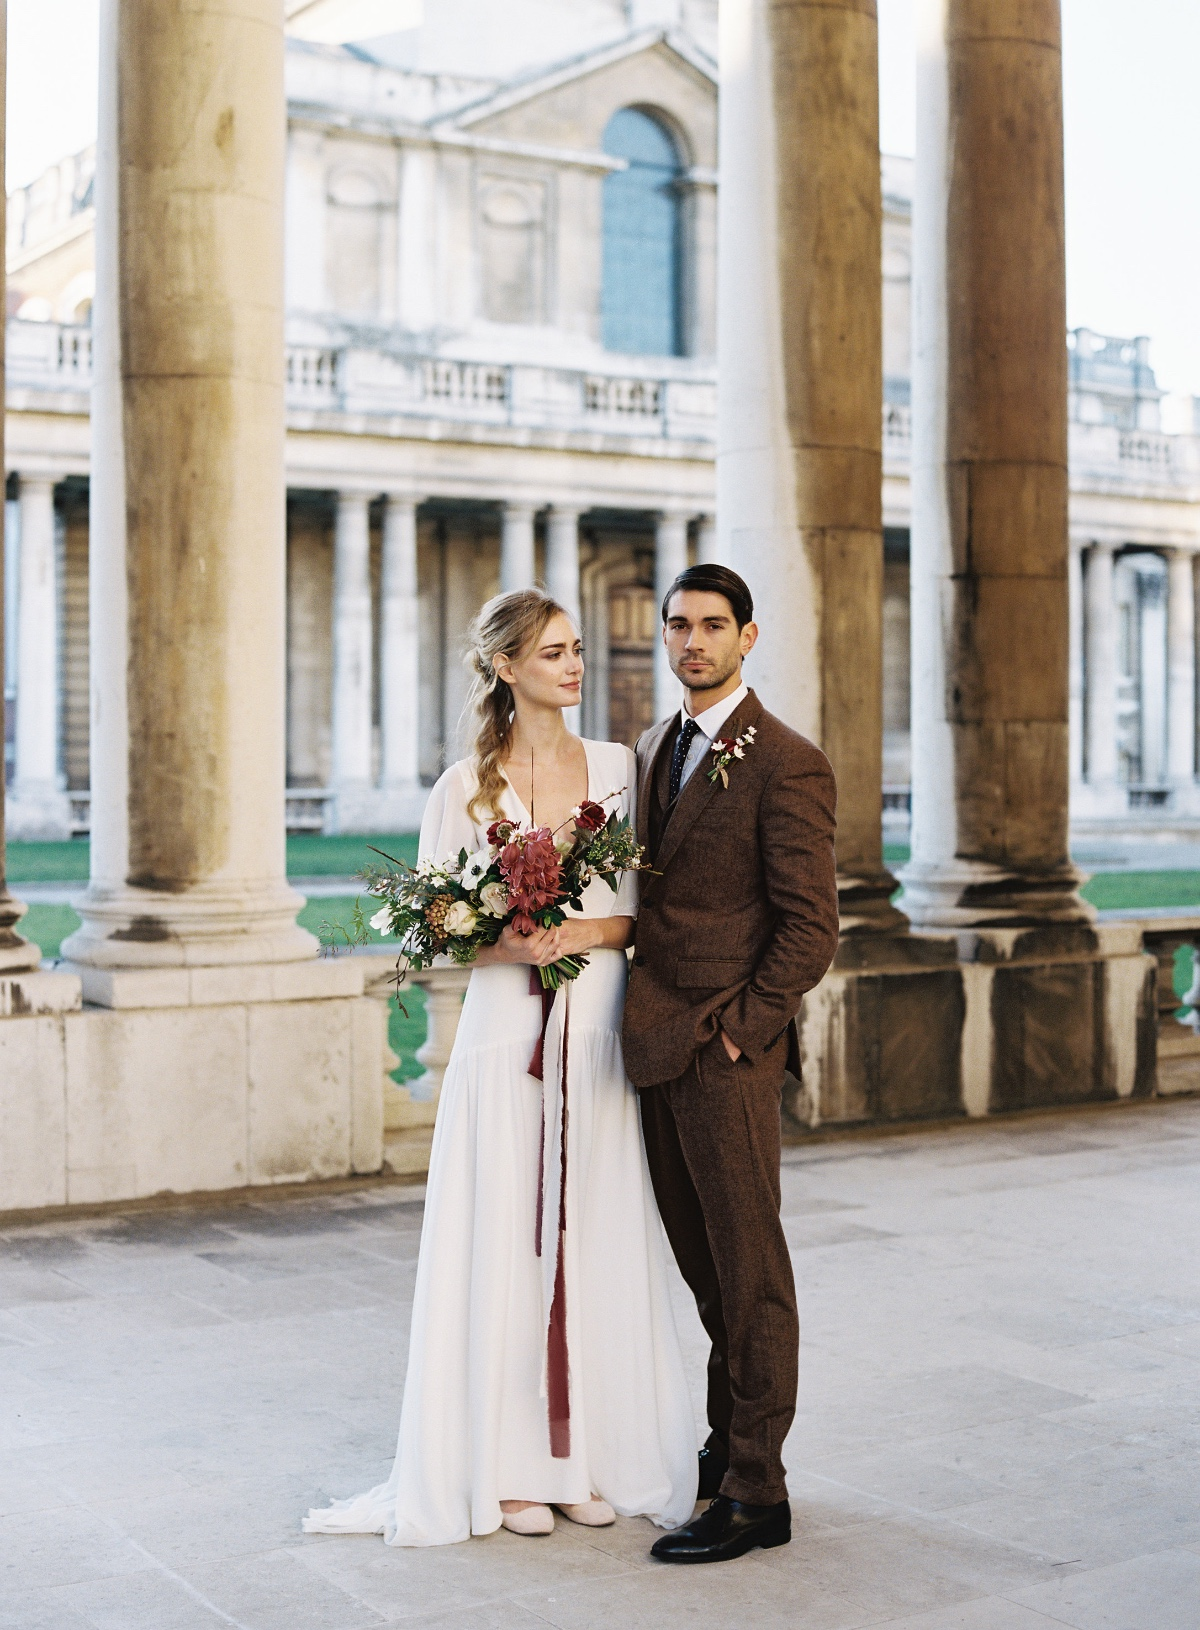 Stylish modern wedding look